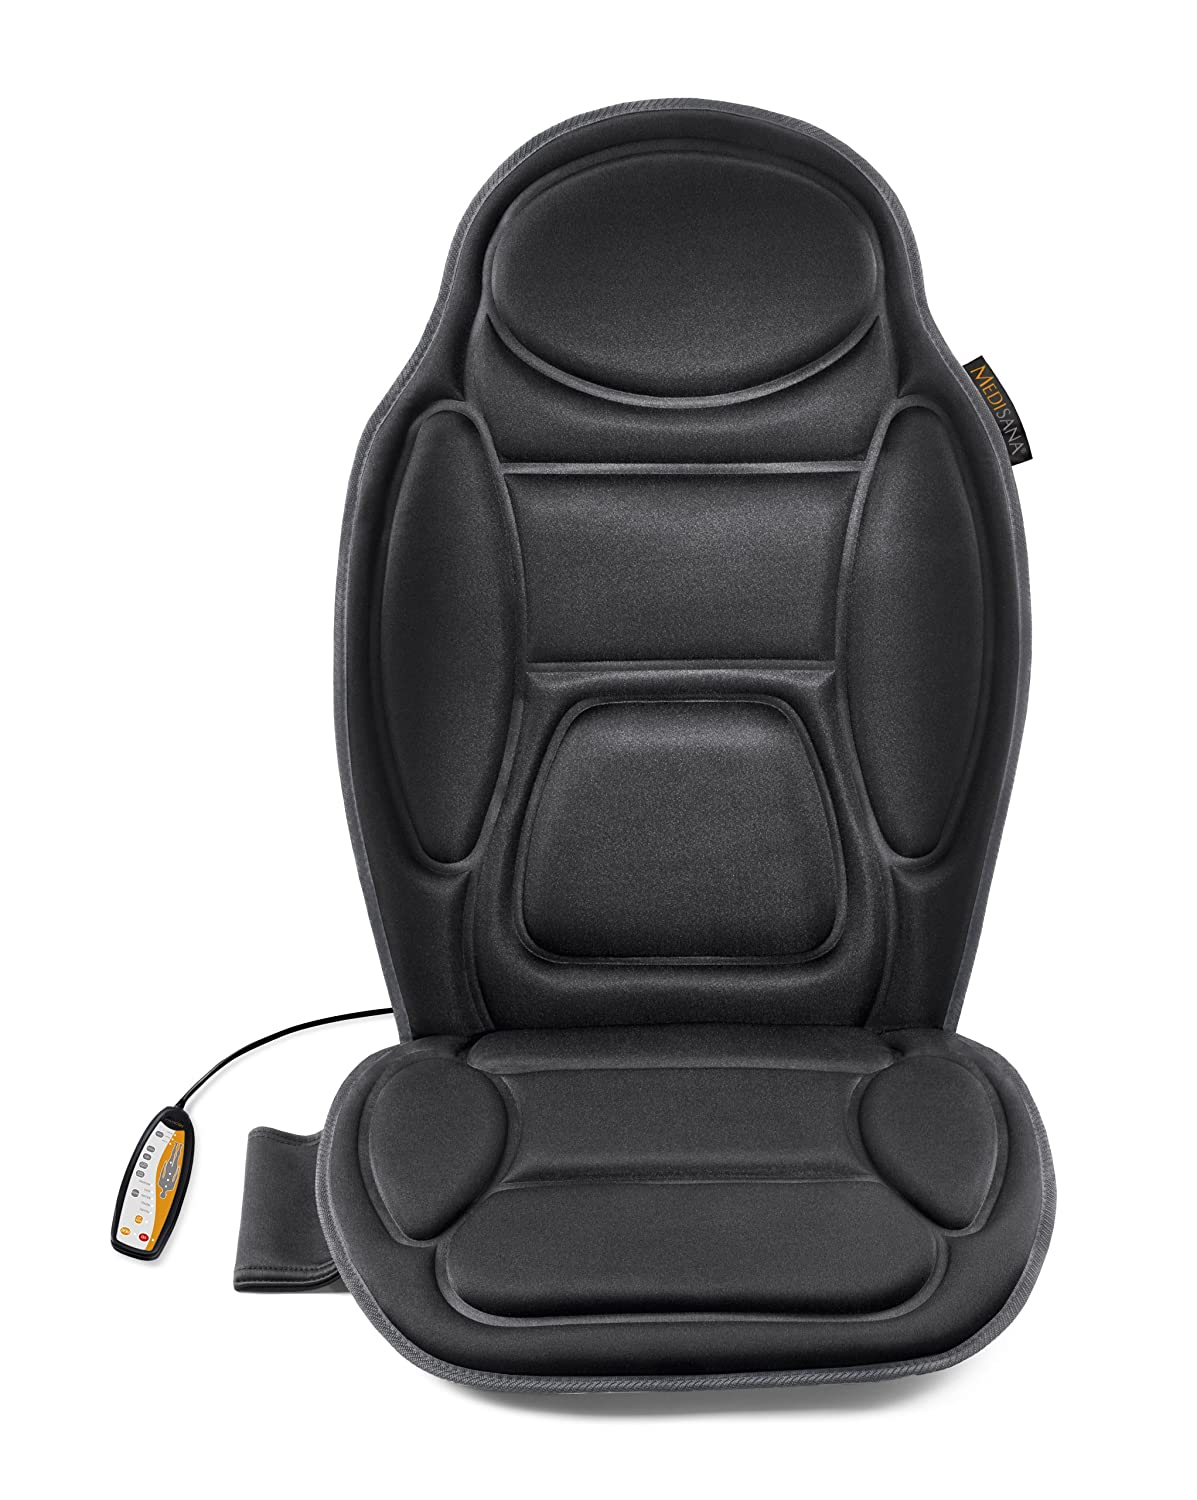 Medisana Home & Car Seat Cover Massager MCH 88935